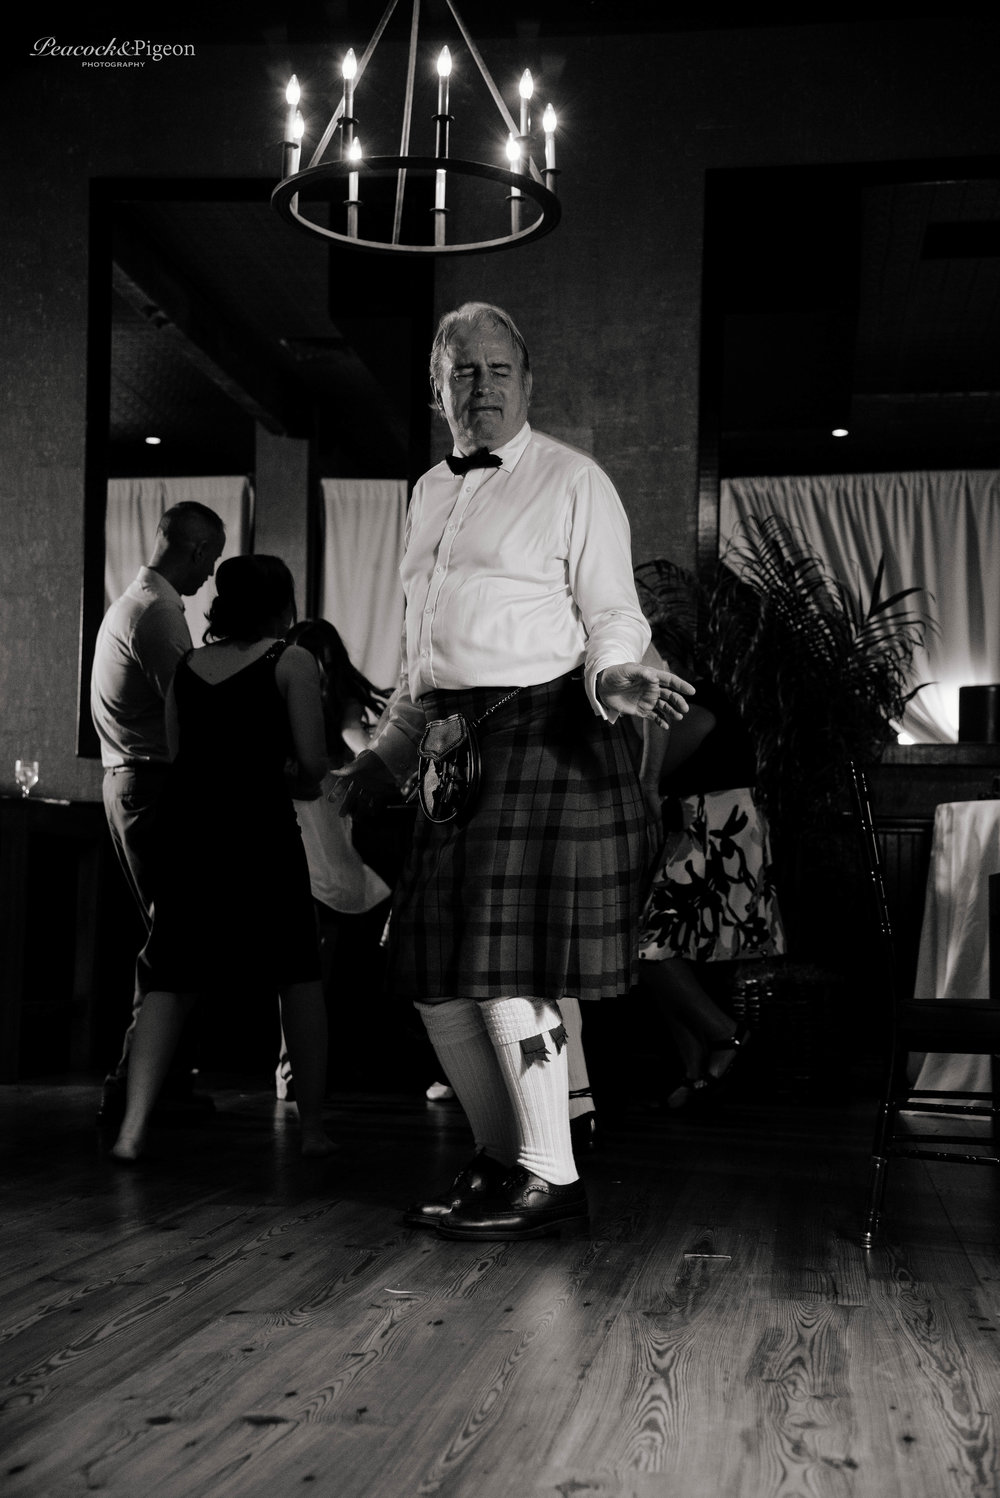 Callum_and_Sara's_Wedding_at_the_Cork_Factory_Hotel_in_Lancaster_Part_Eleven_Dancing_Continued_Black_and_White_Watermarked-36.jpg